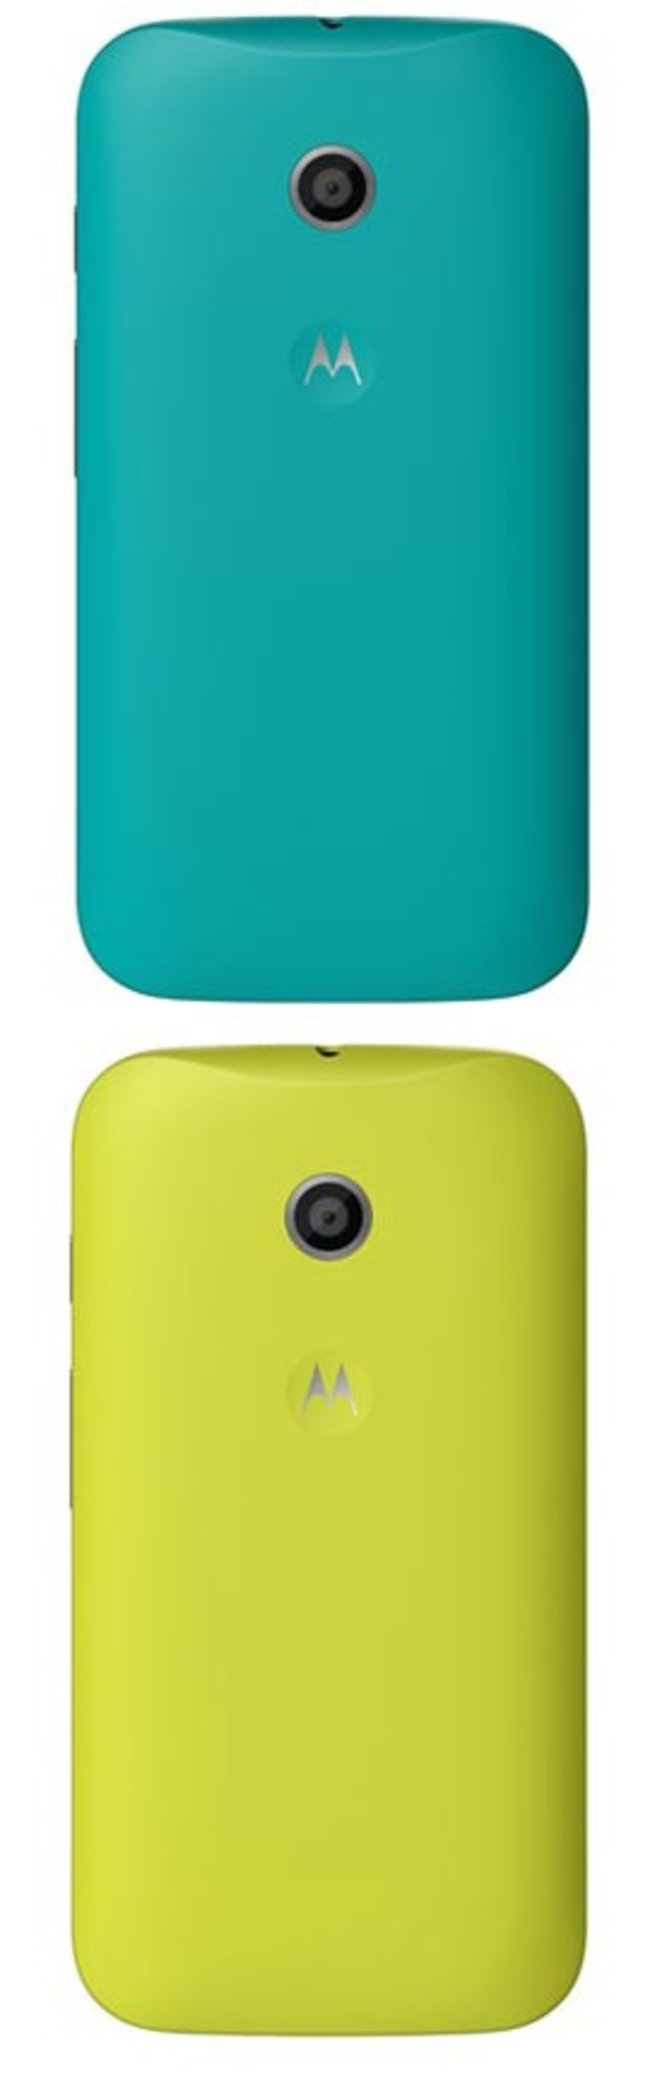 Motorola Moto E photos leak ahead of Tuesday launch event - photo 3